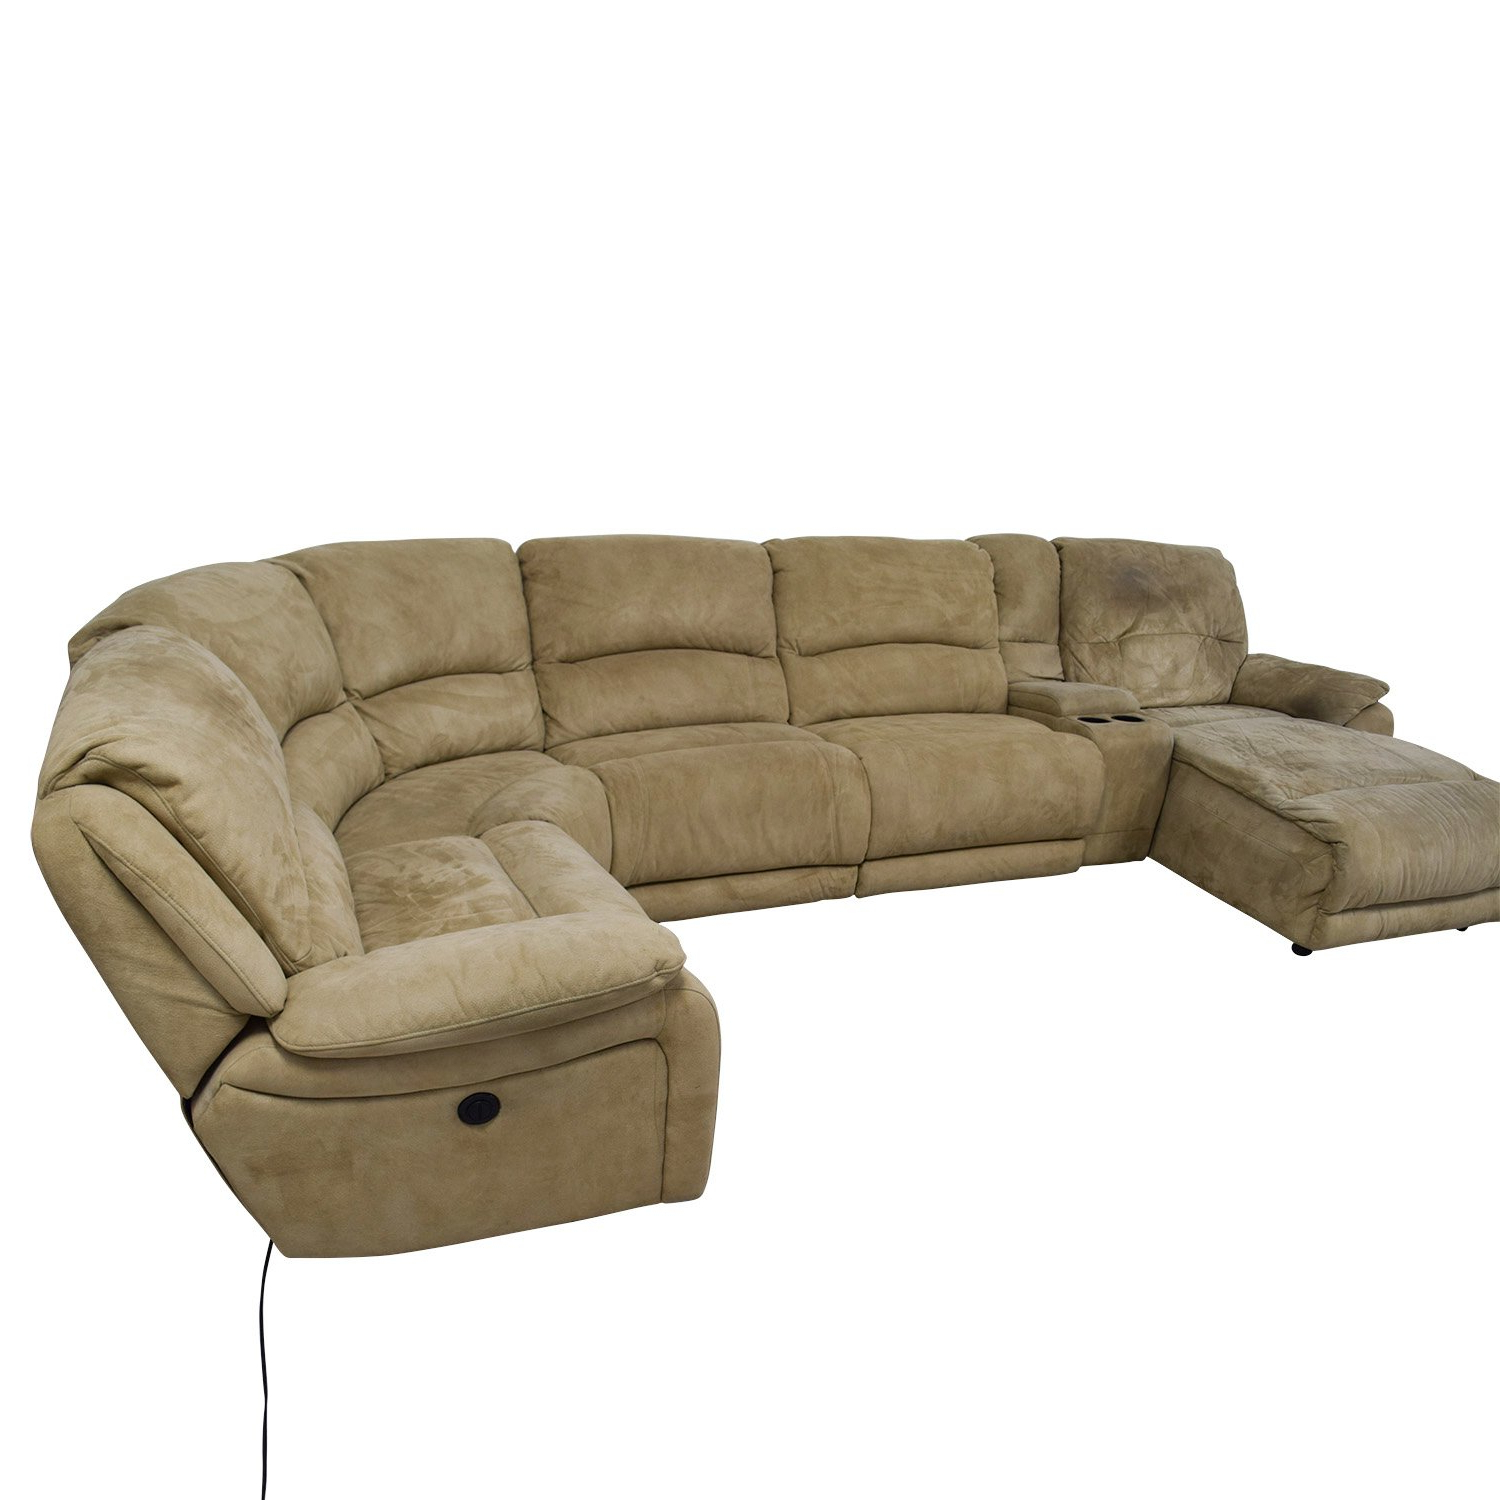 Fabulous 25 Power Reclining Sectional Sofa Favorite Regarding Most Recently Released Calder Grey 6 Piece Manual Reclining Sectionals (Gallery 3 of 20)